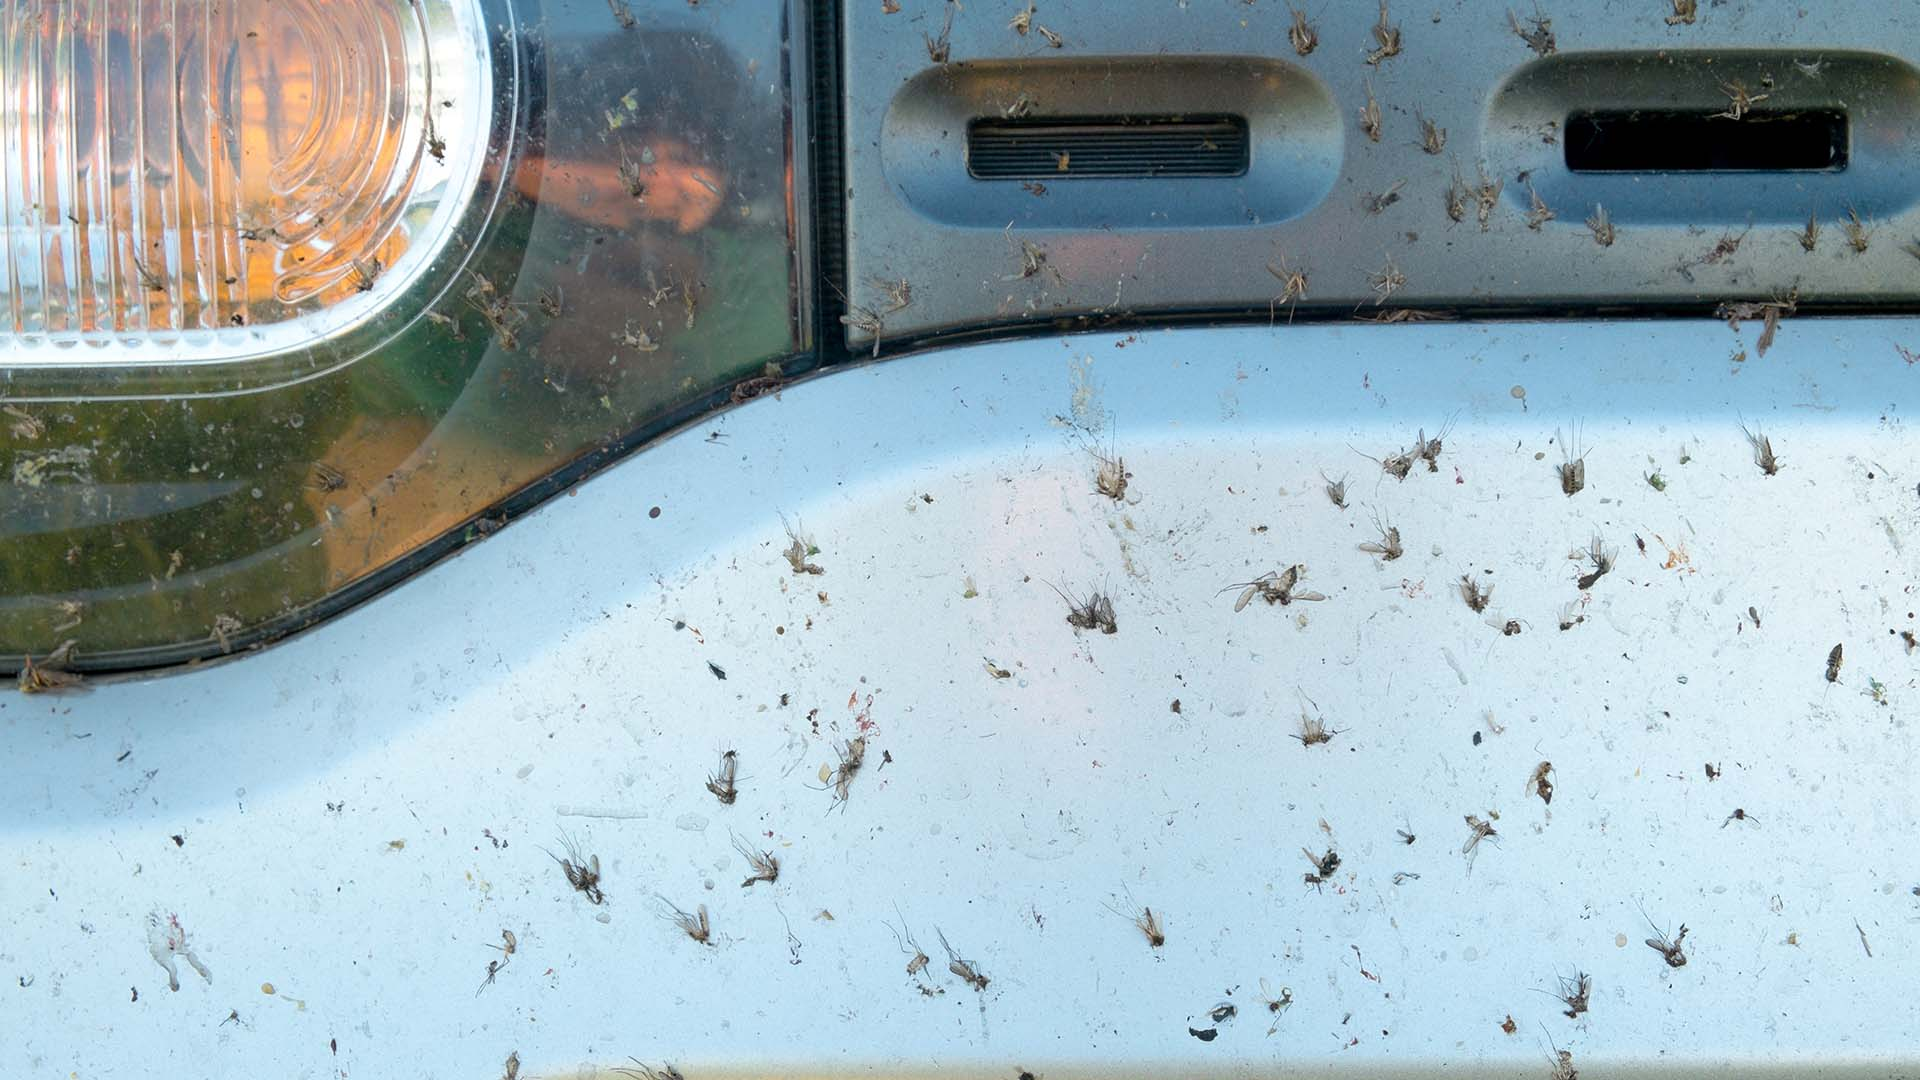 Fewer insects found on front of cars